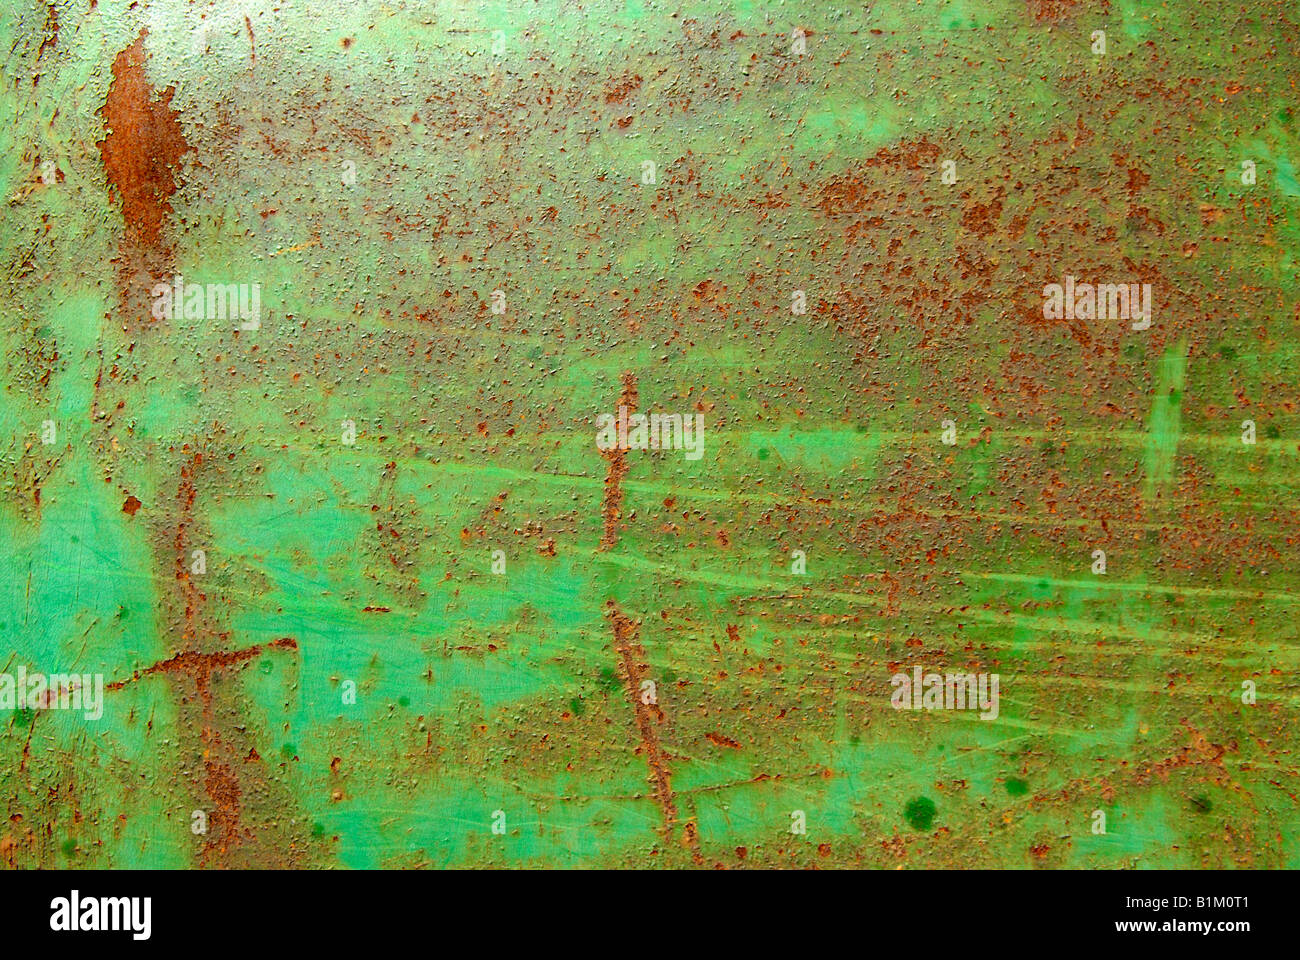 GREEN & RUSTY - Stock Image